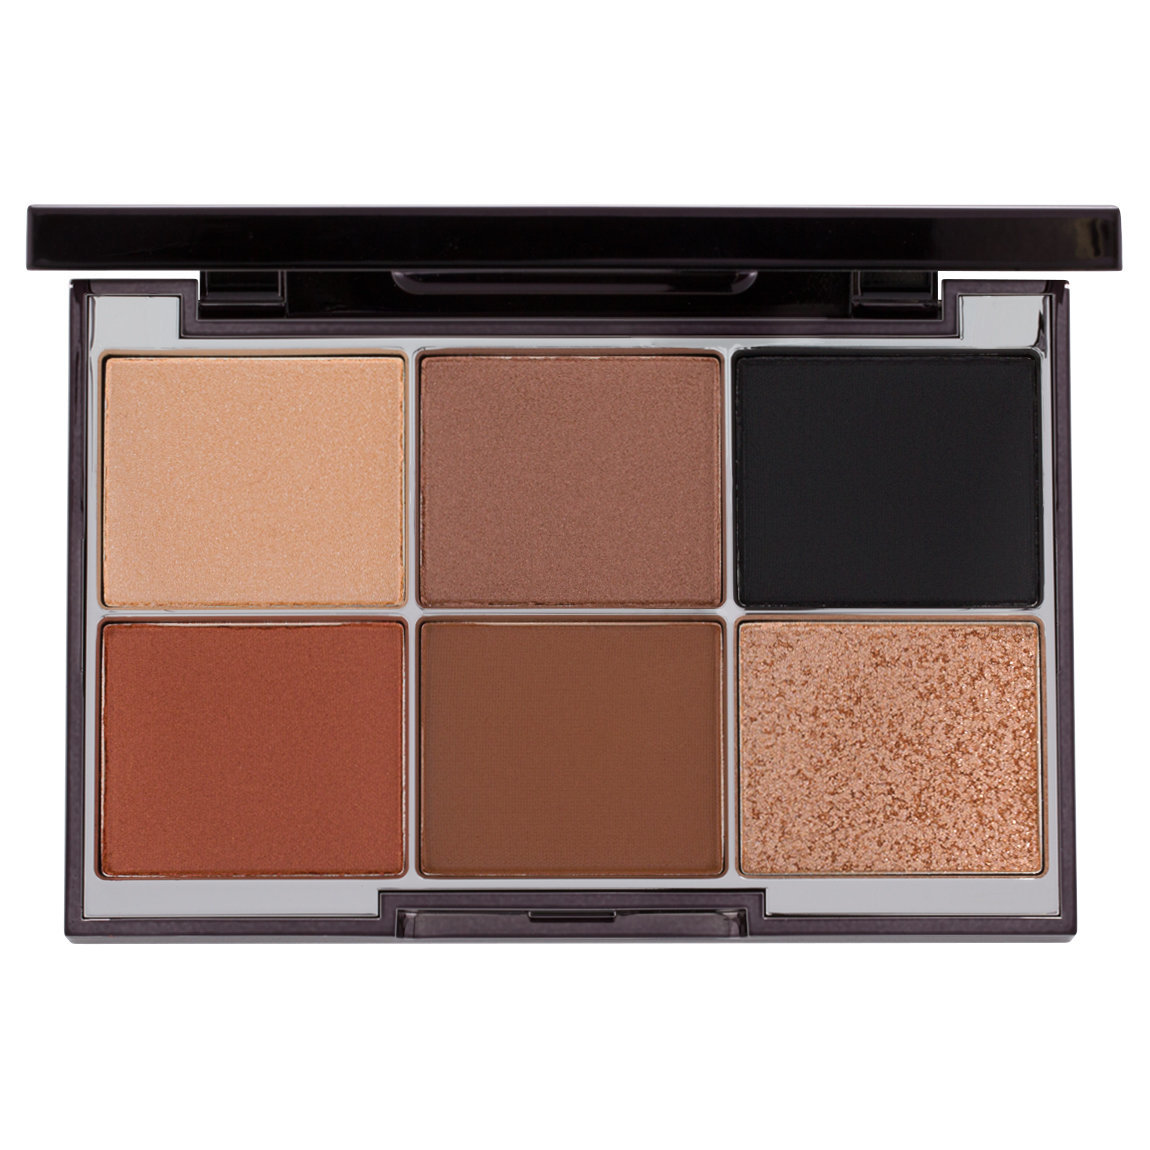 Wayne Goss The Luxury Eye Palette product swatch.